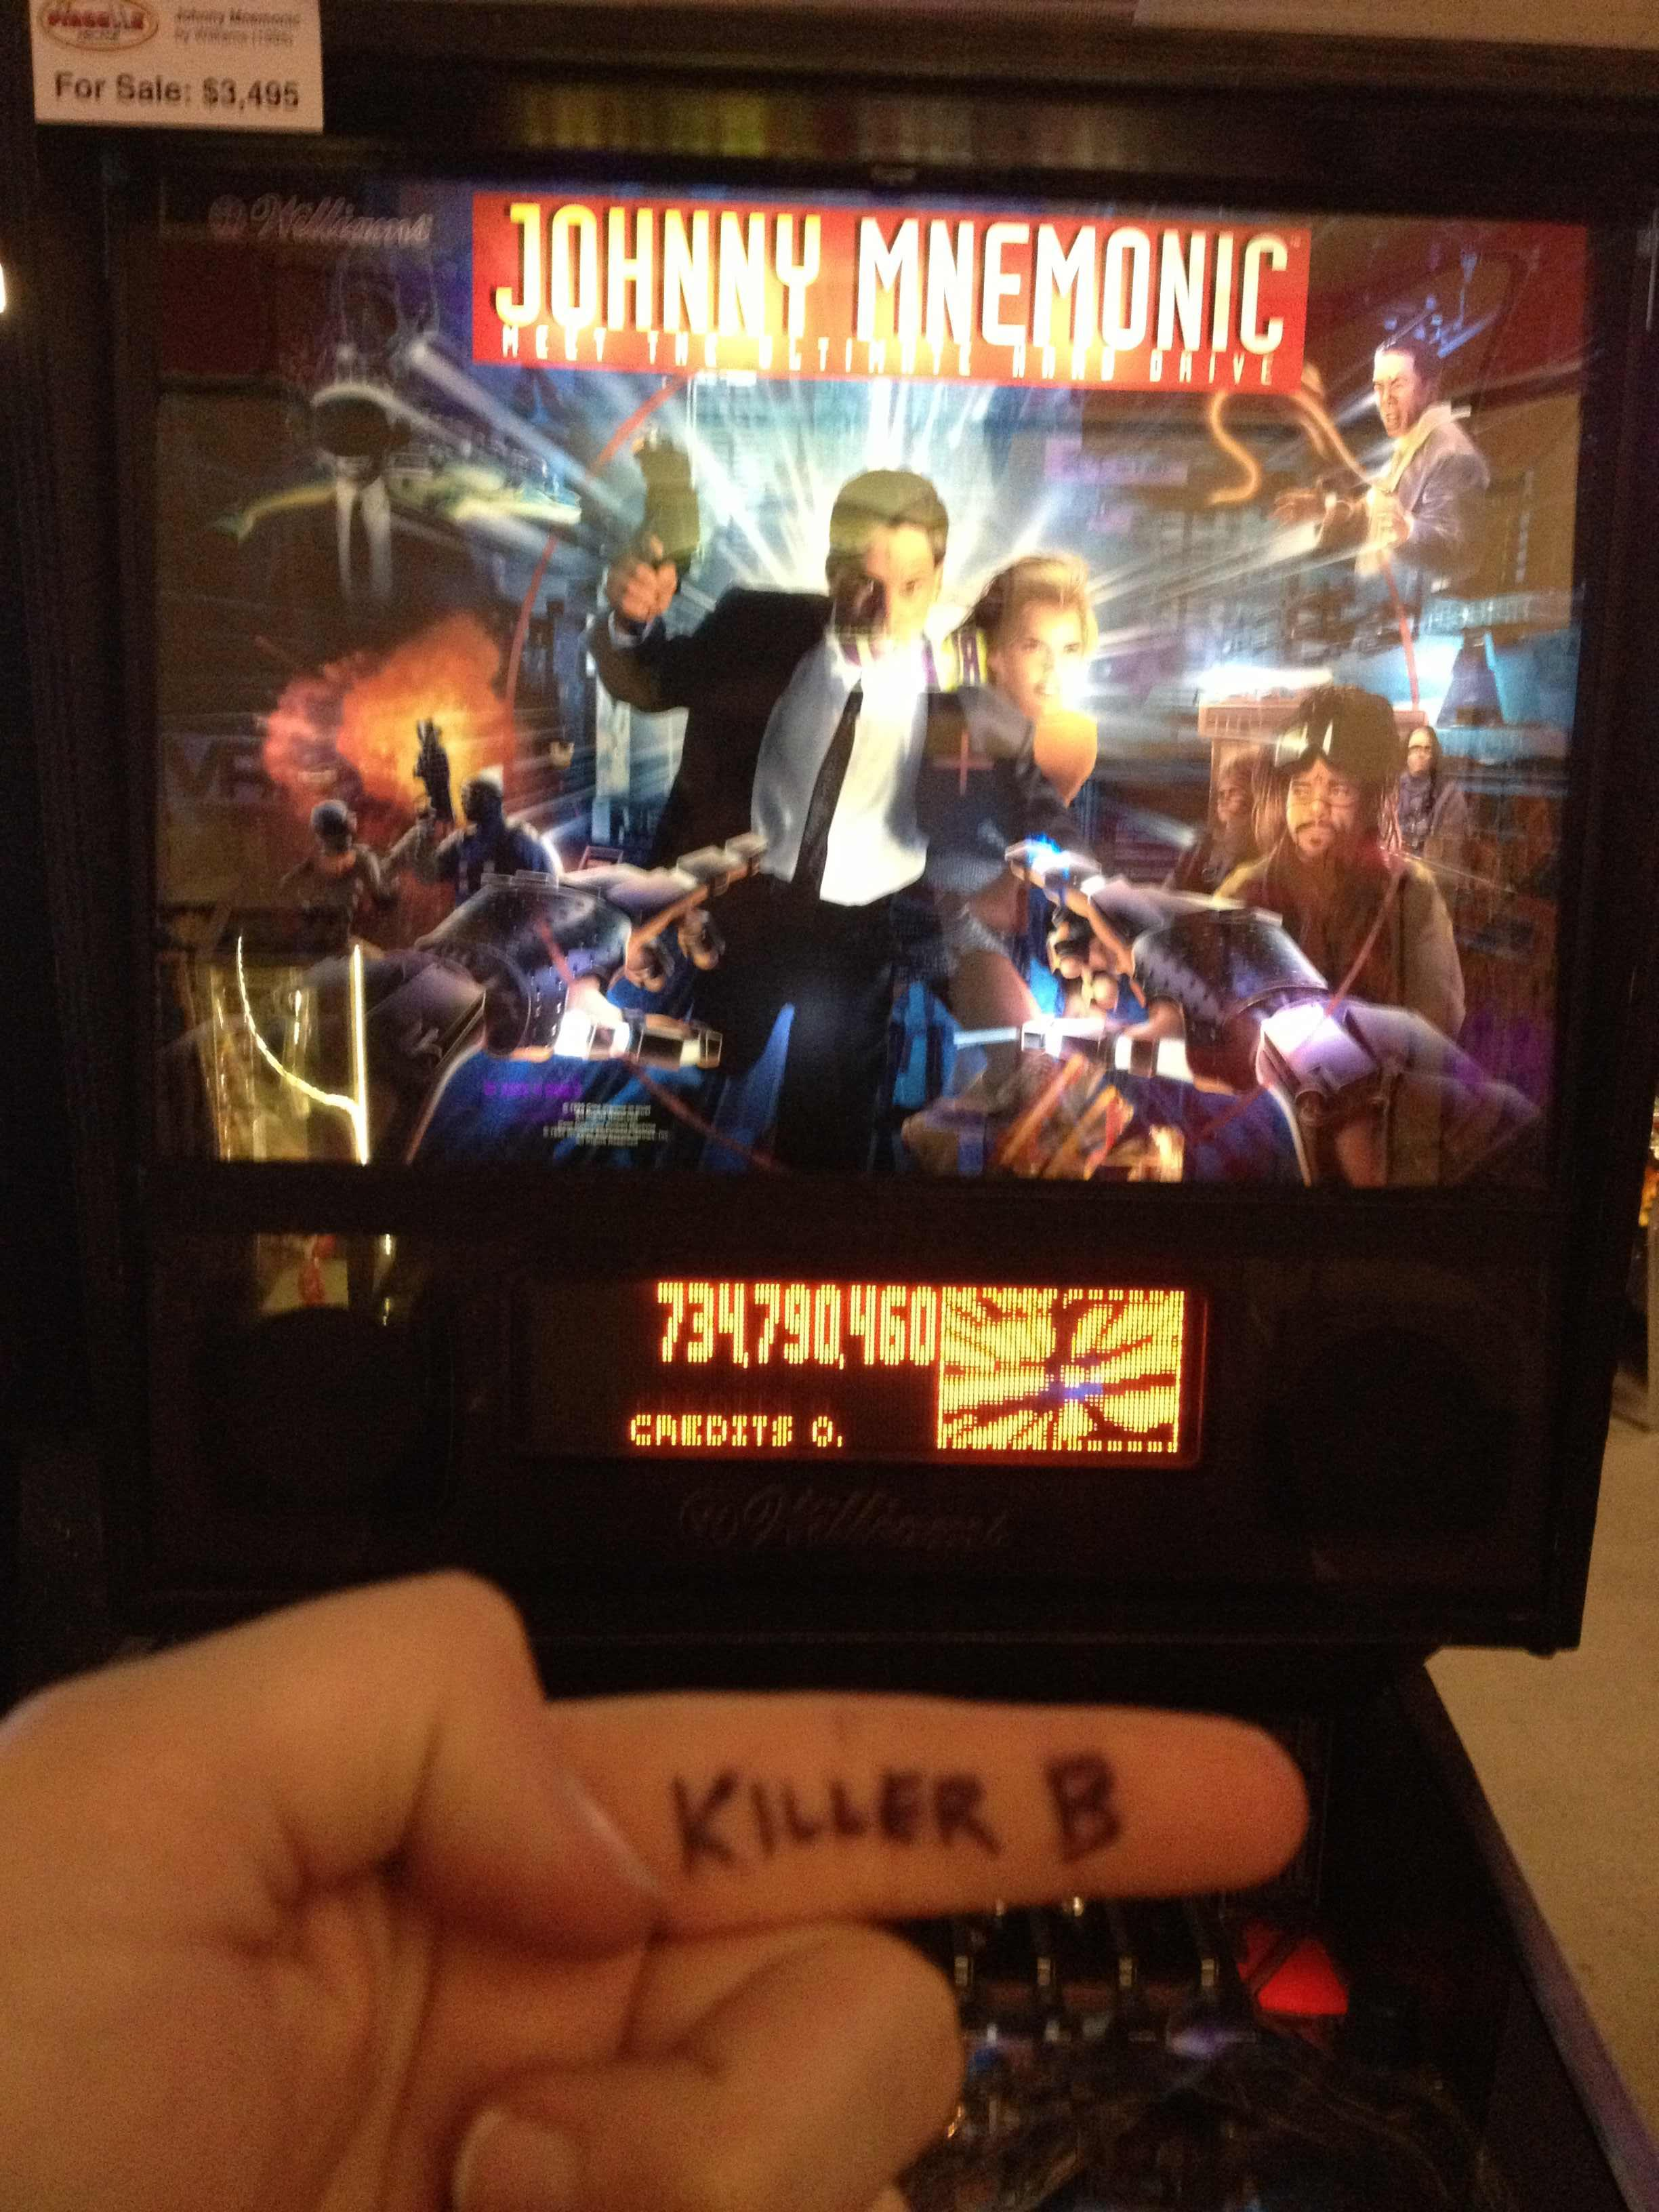 KillerB: Johnny Mnemonic (Pinball: 3 Balls) 734,790,460 points on 2013-10-06 01:16:07